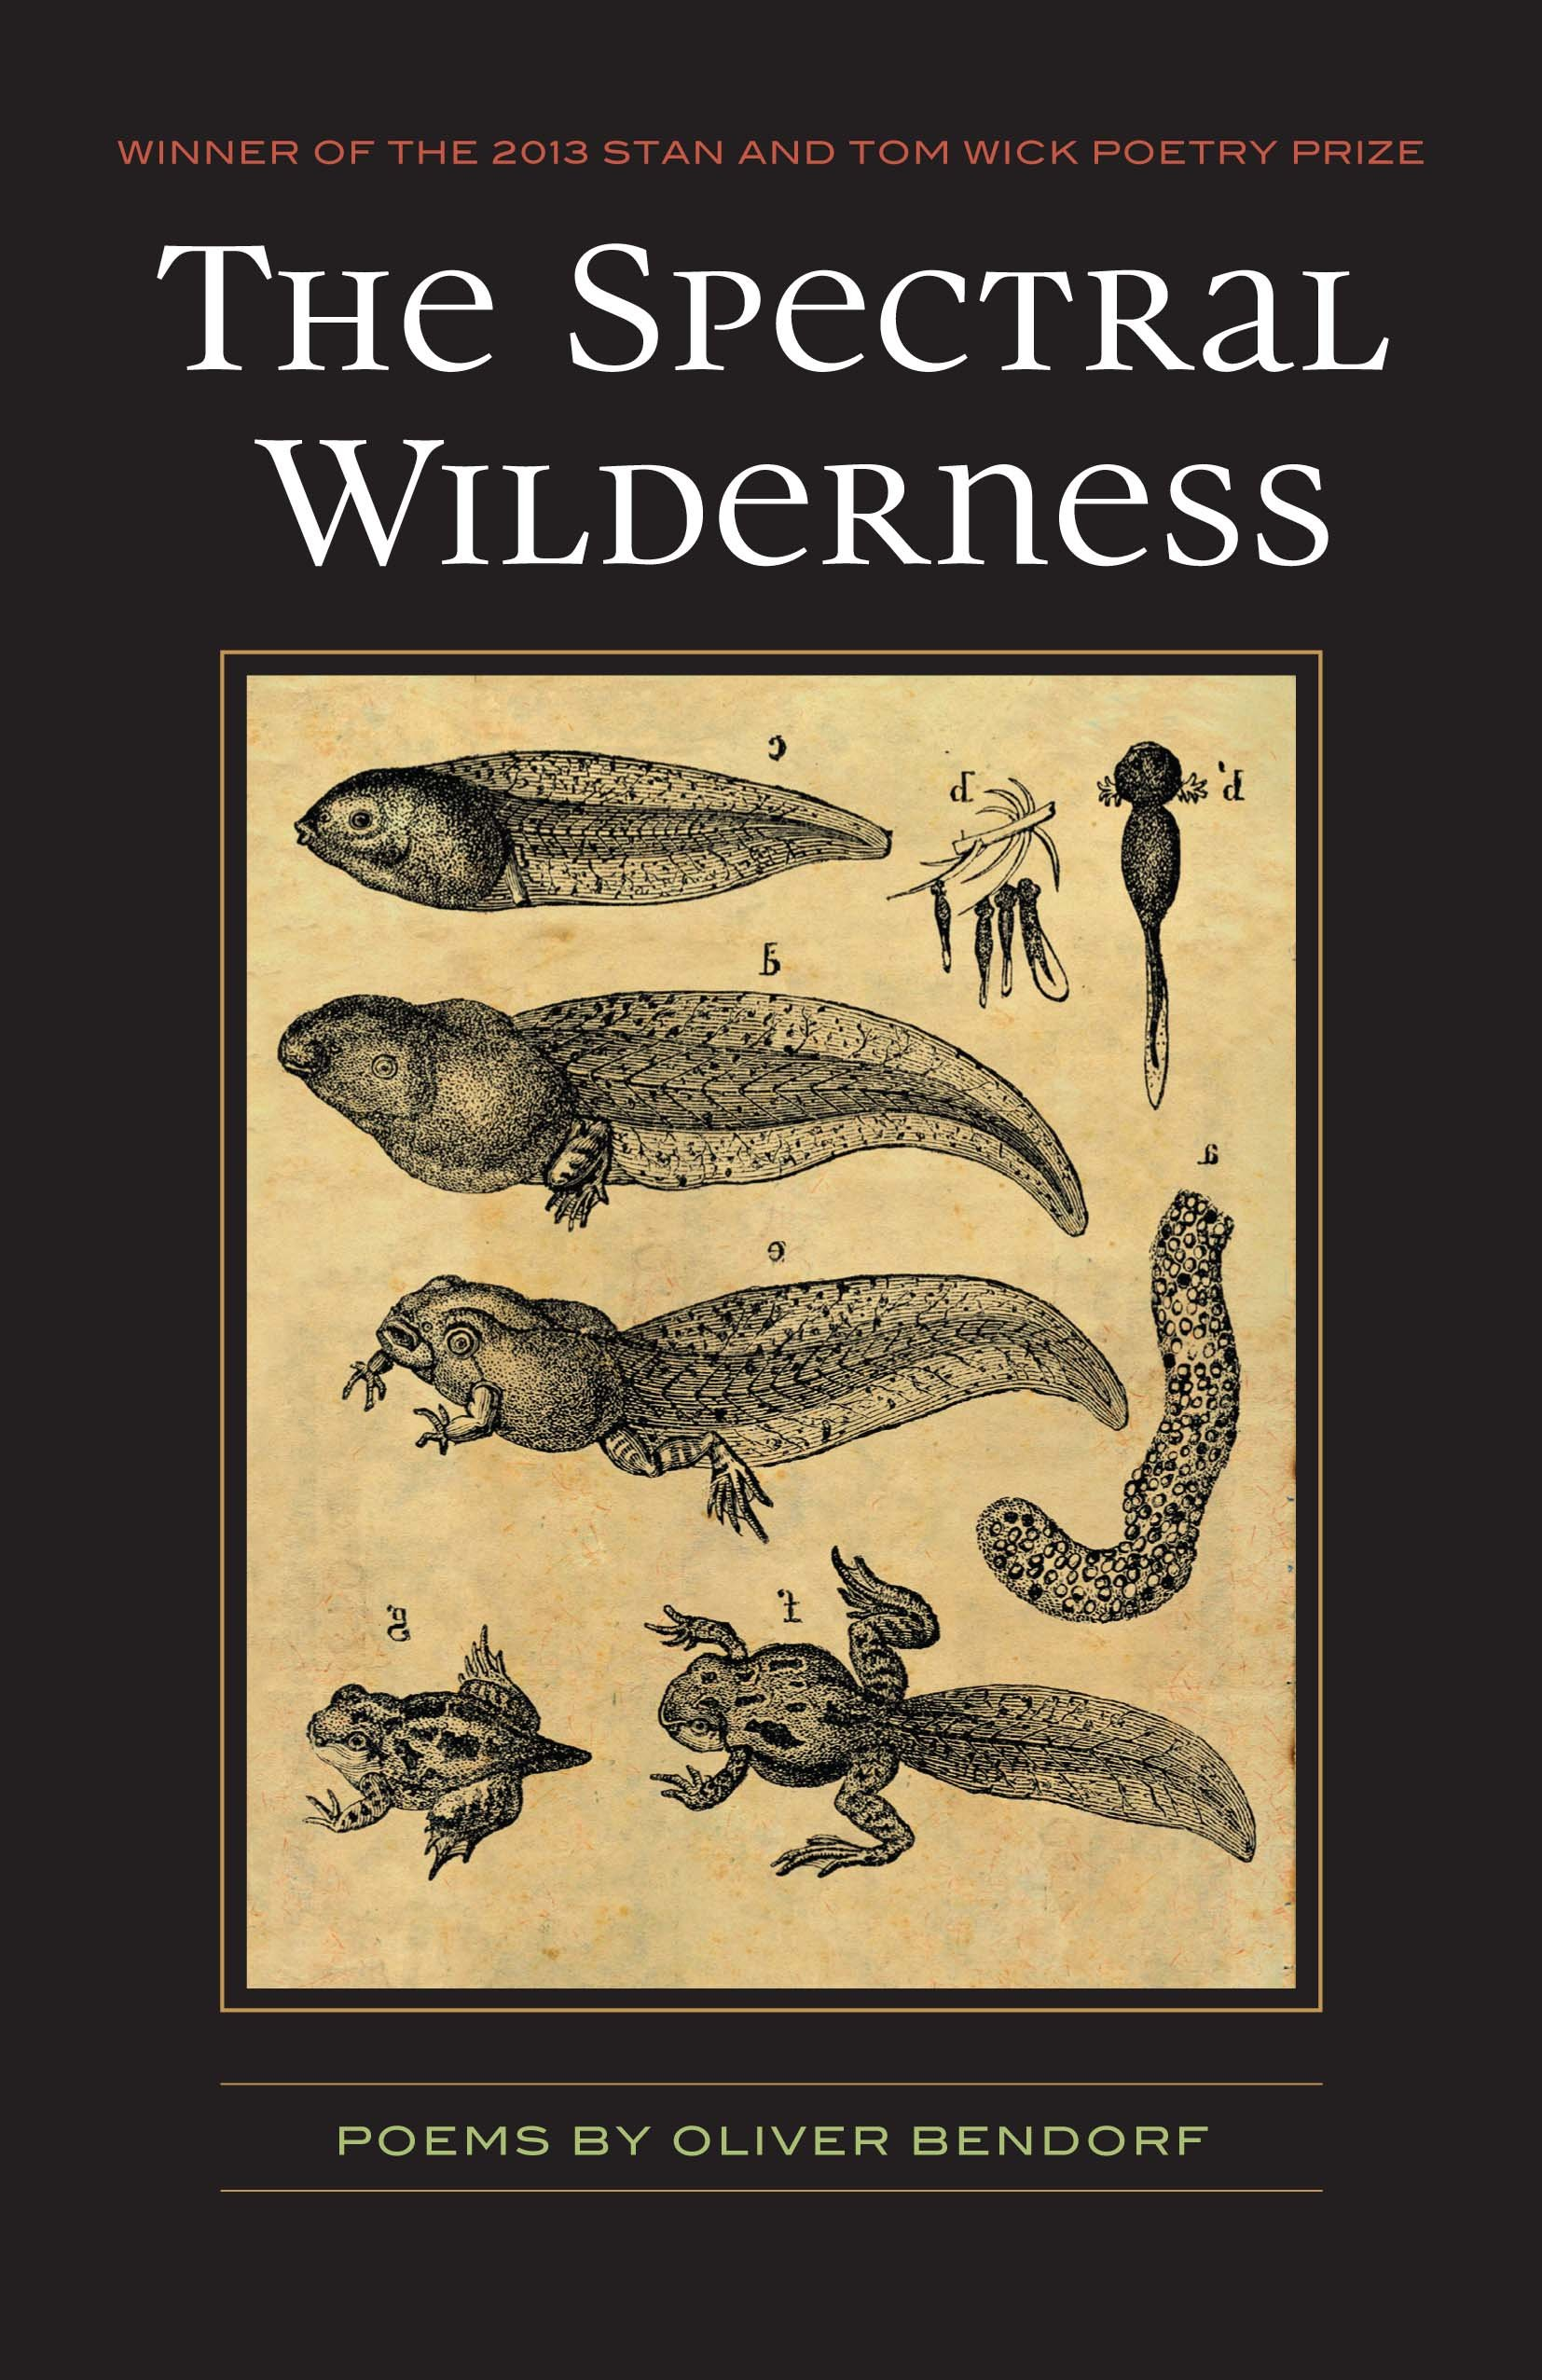 The Spectral Wilderness by Oliver Bendorf